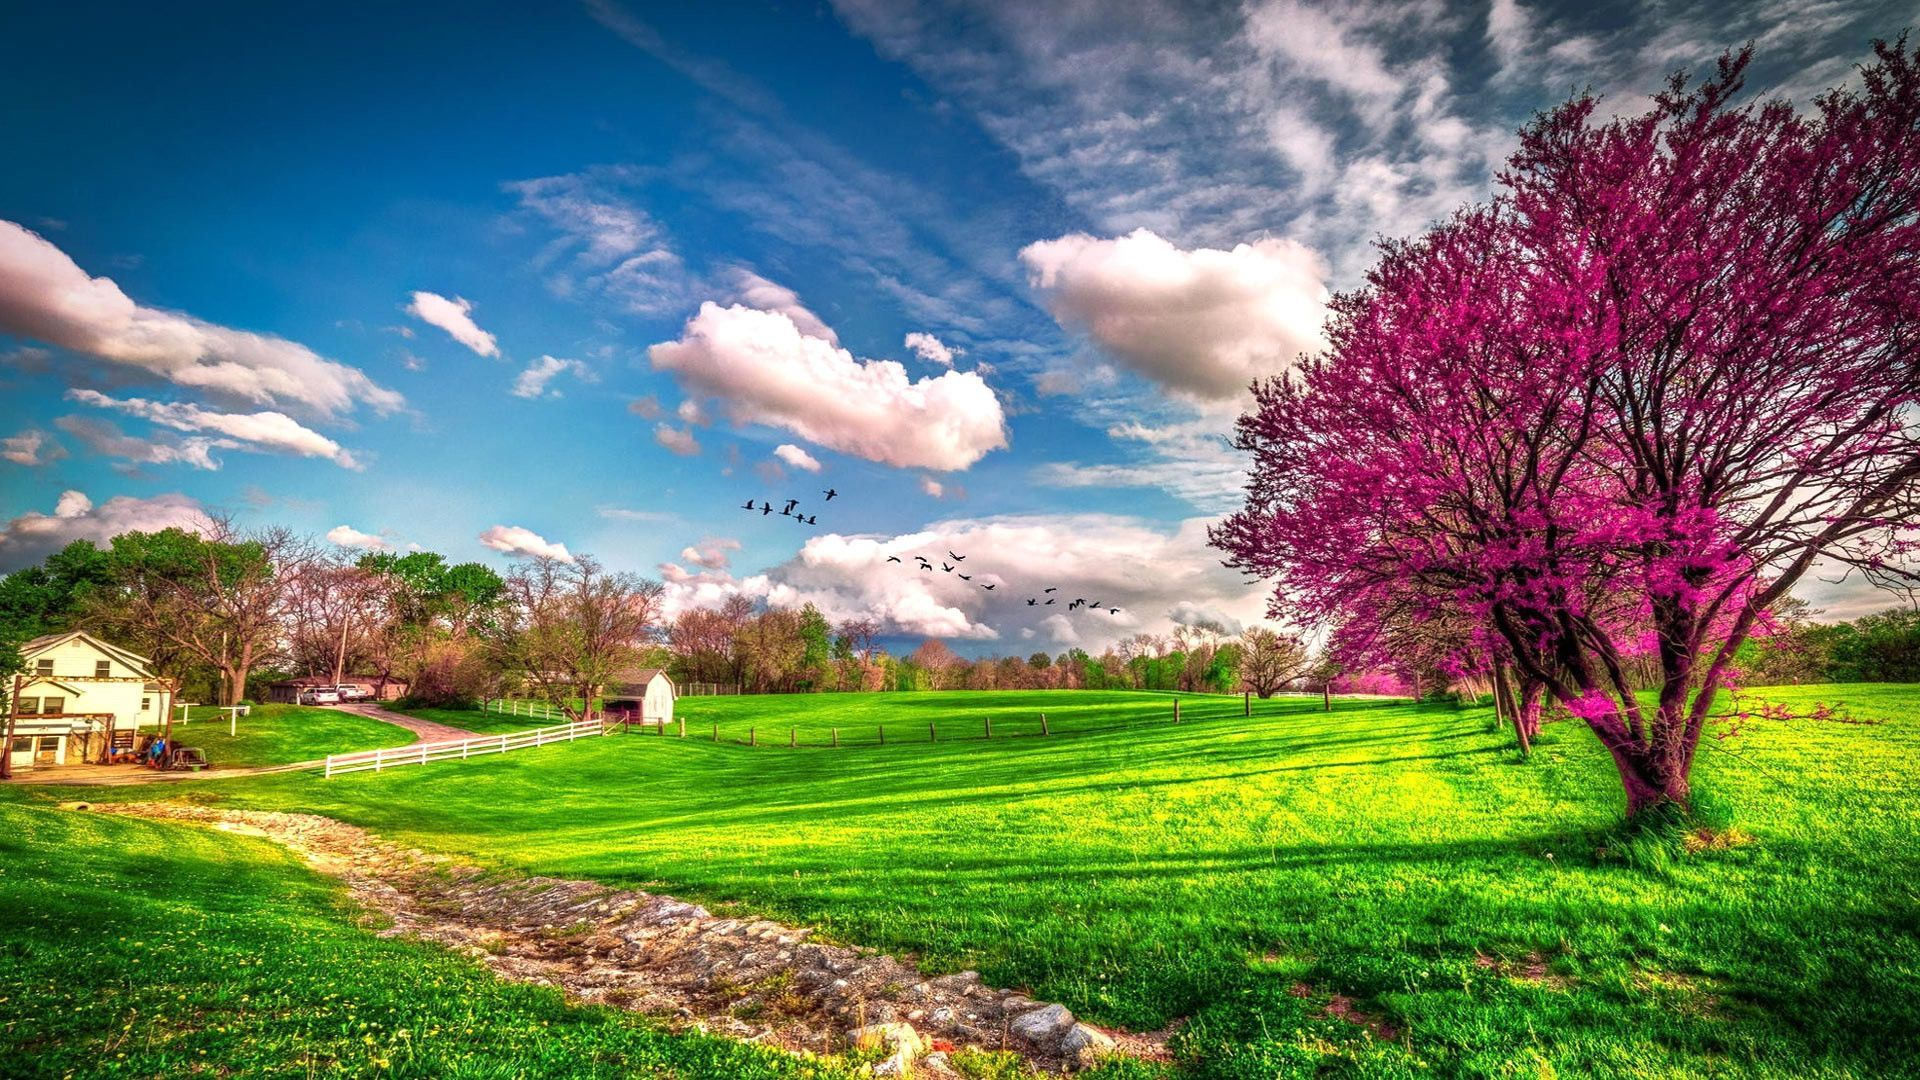 35 Spring Nature Landscapes HD Wallpapers   Download at WallpaperBro 1920x1080